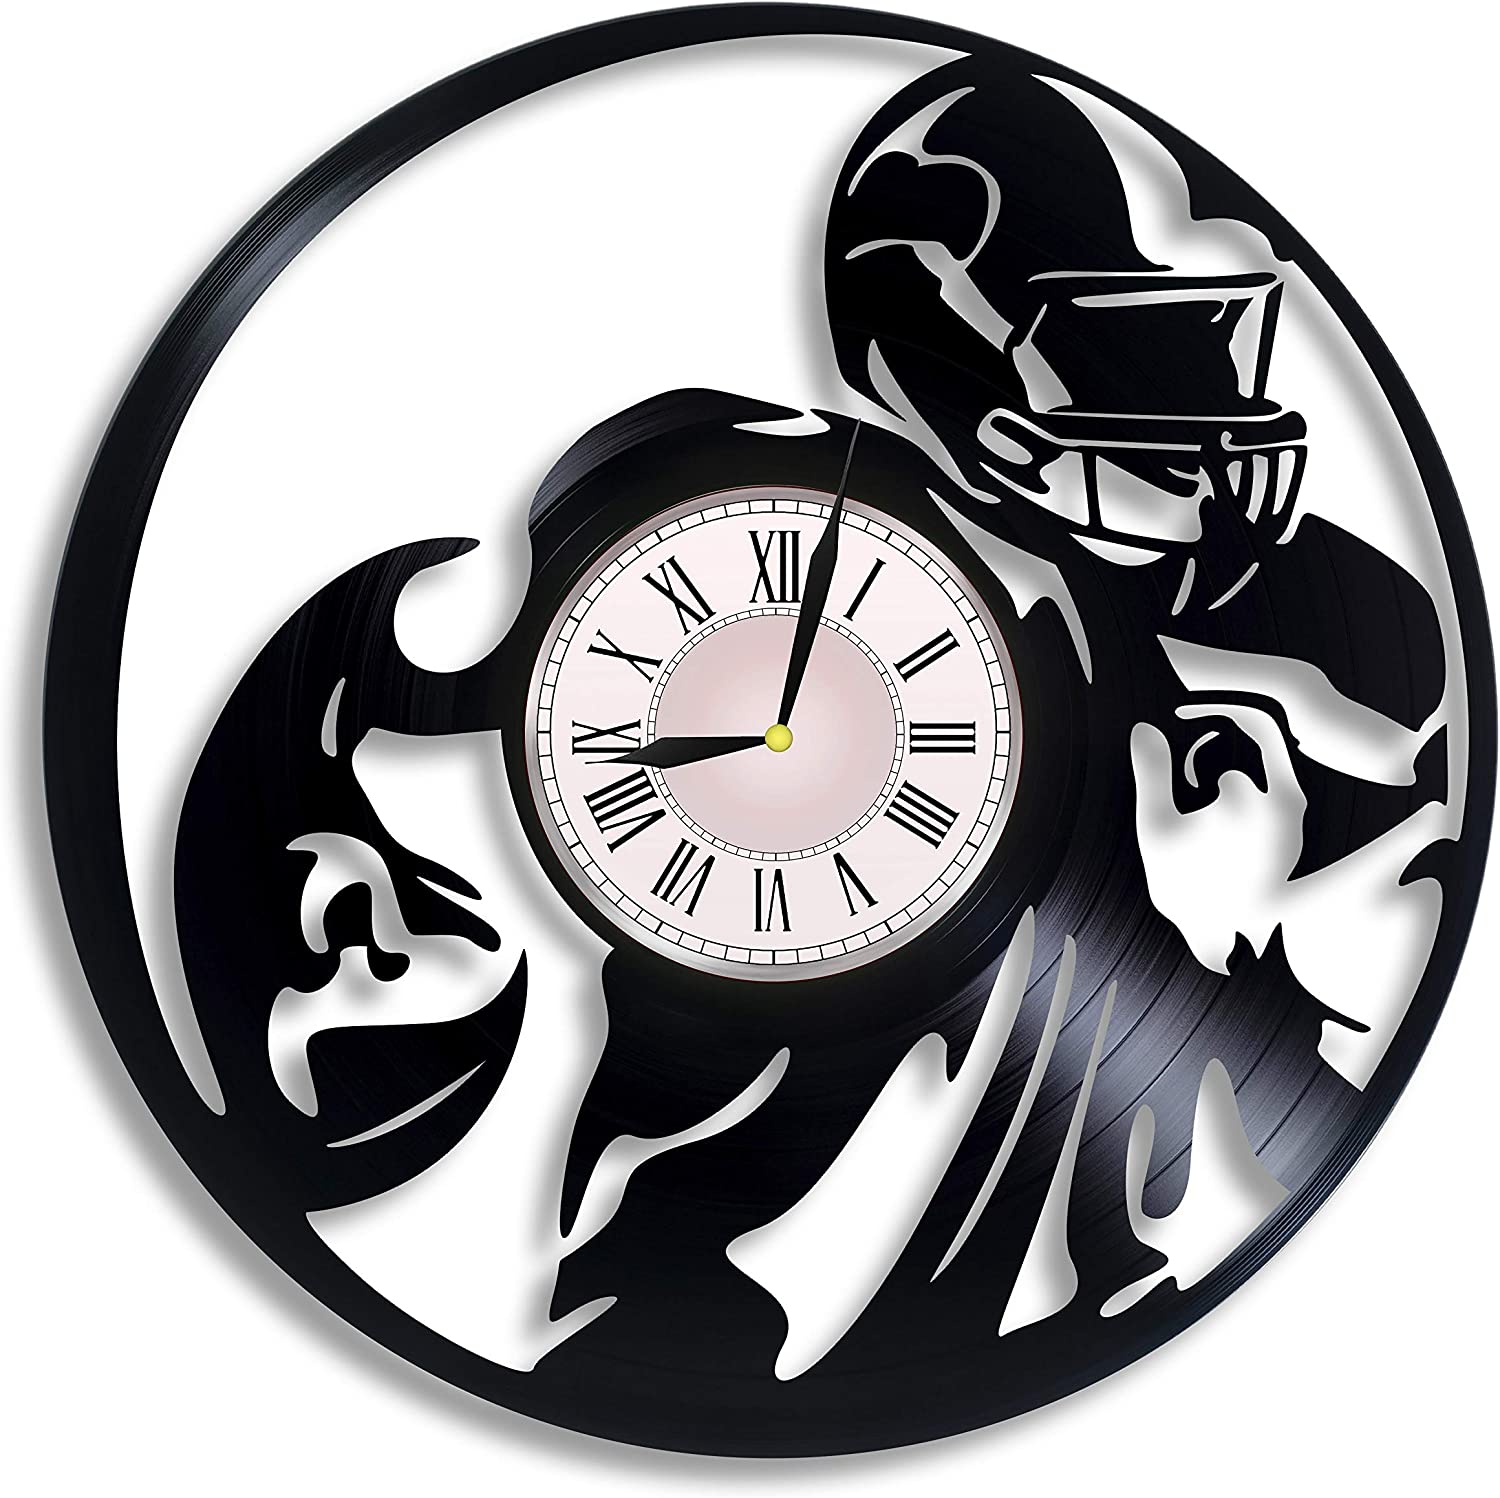 Russell Wilson American Football Vinyl Wall Clock, Russell Wilson Seattle Seahawks Wall Poster Art, Russell Wilson Gift for Any Occasion